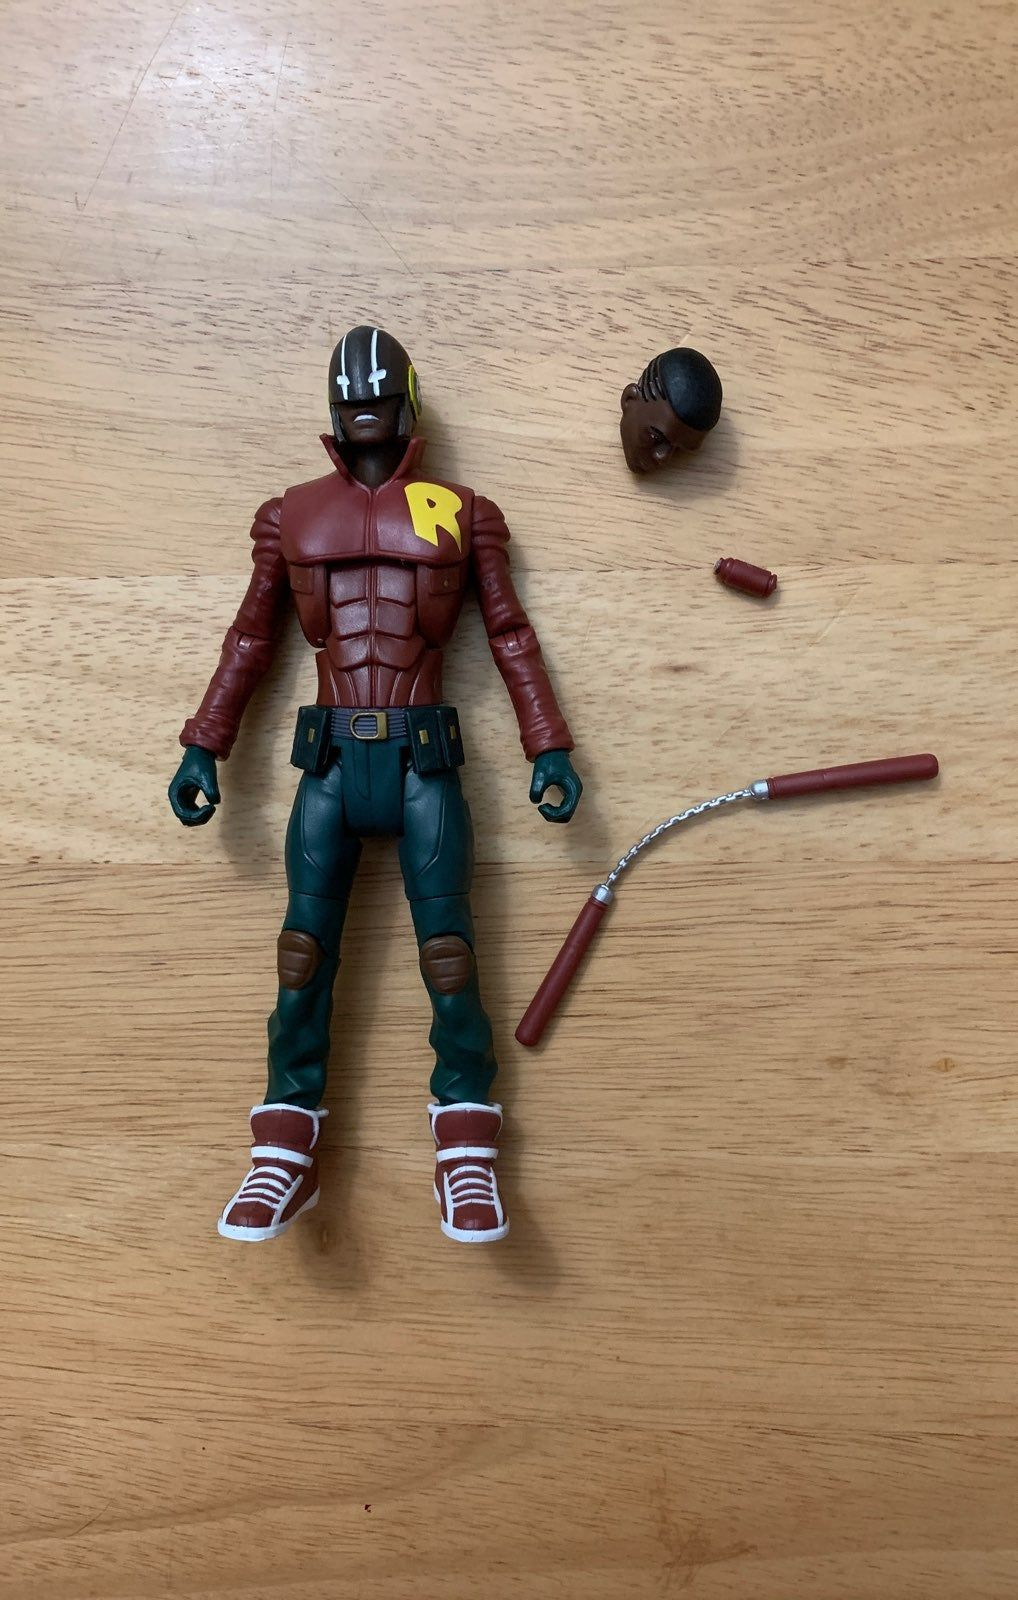 Duke as Robin in great condition only used for display